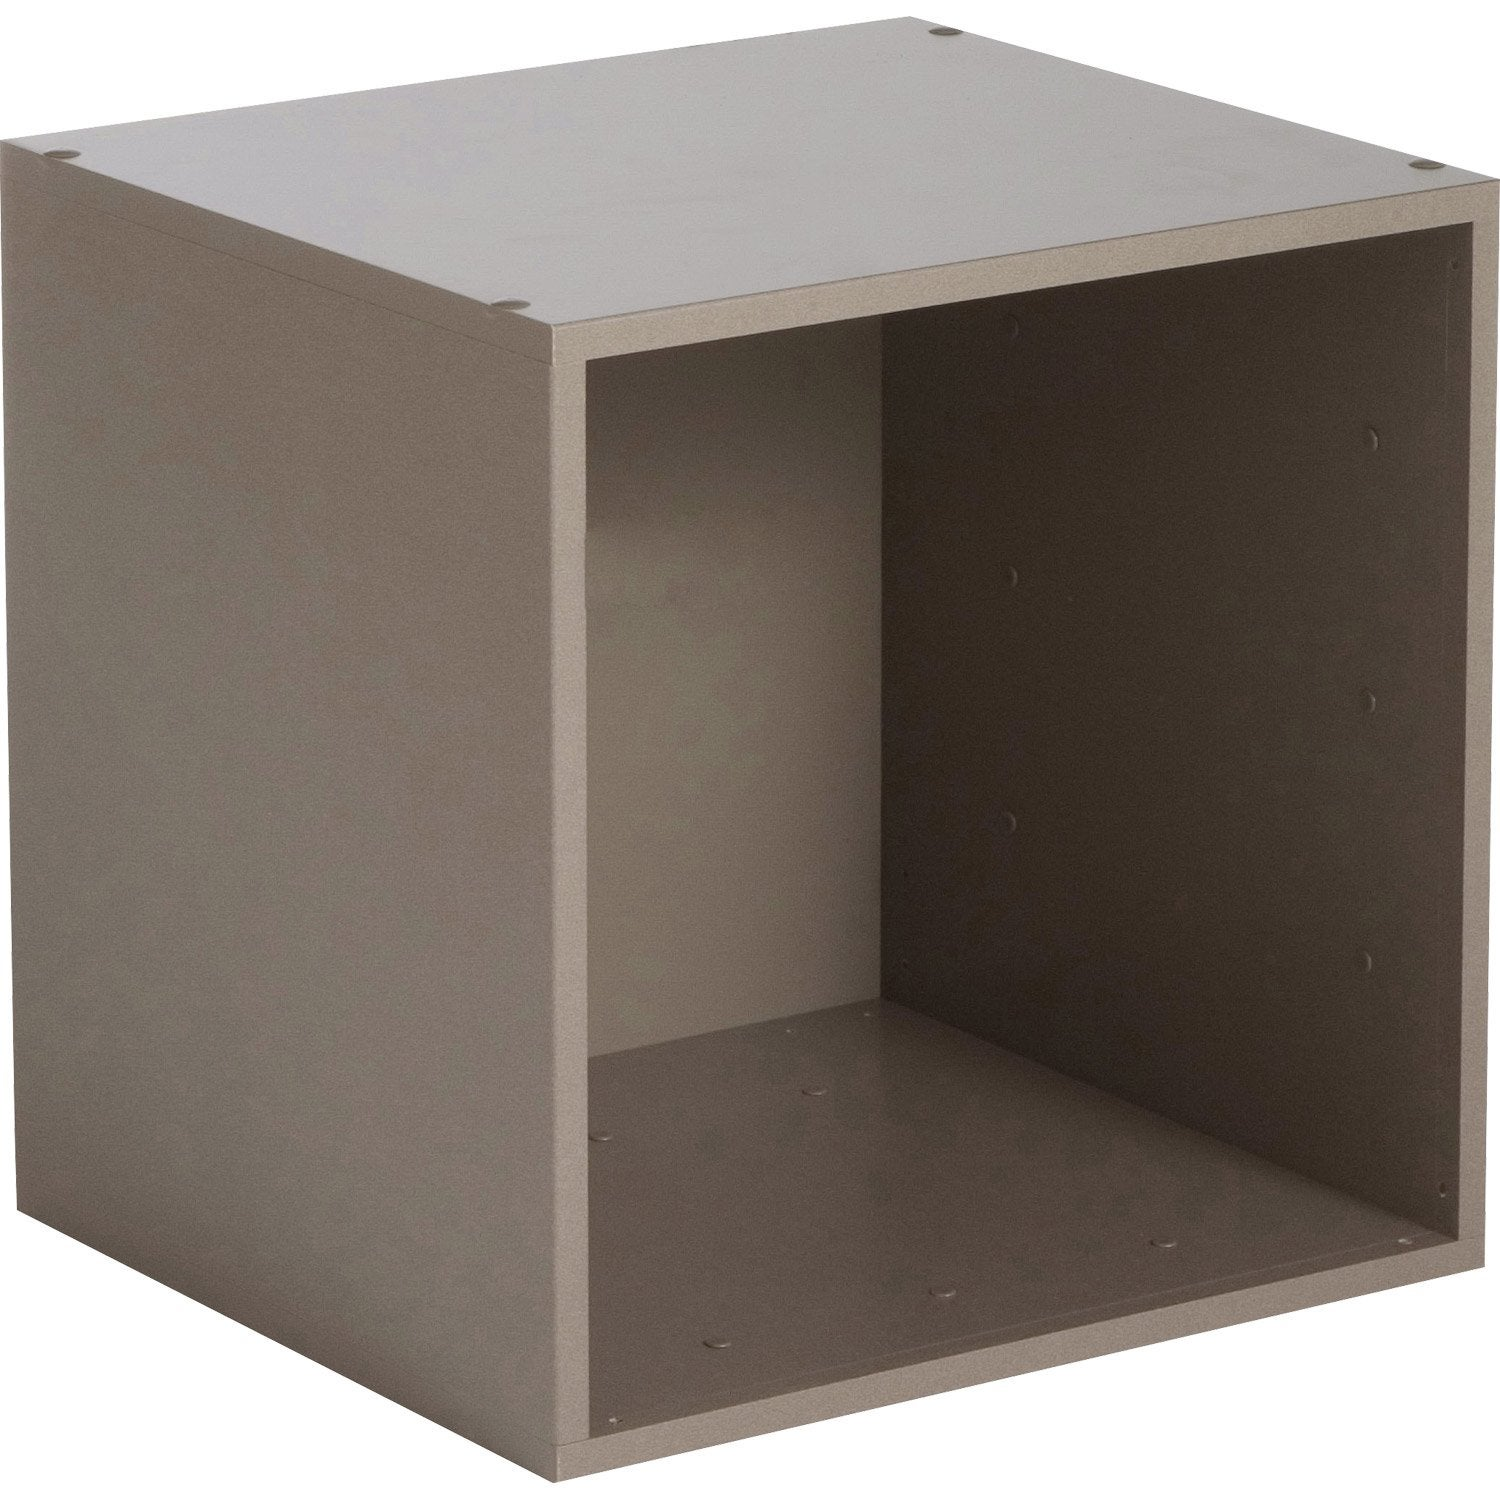 Etag re 1 case multikaz taupe x x cm leroy merlin - Cube rangement leroy merlin ...